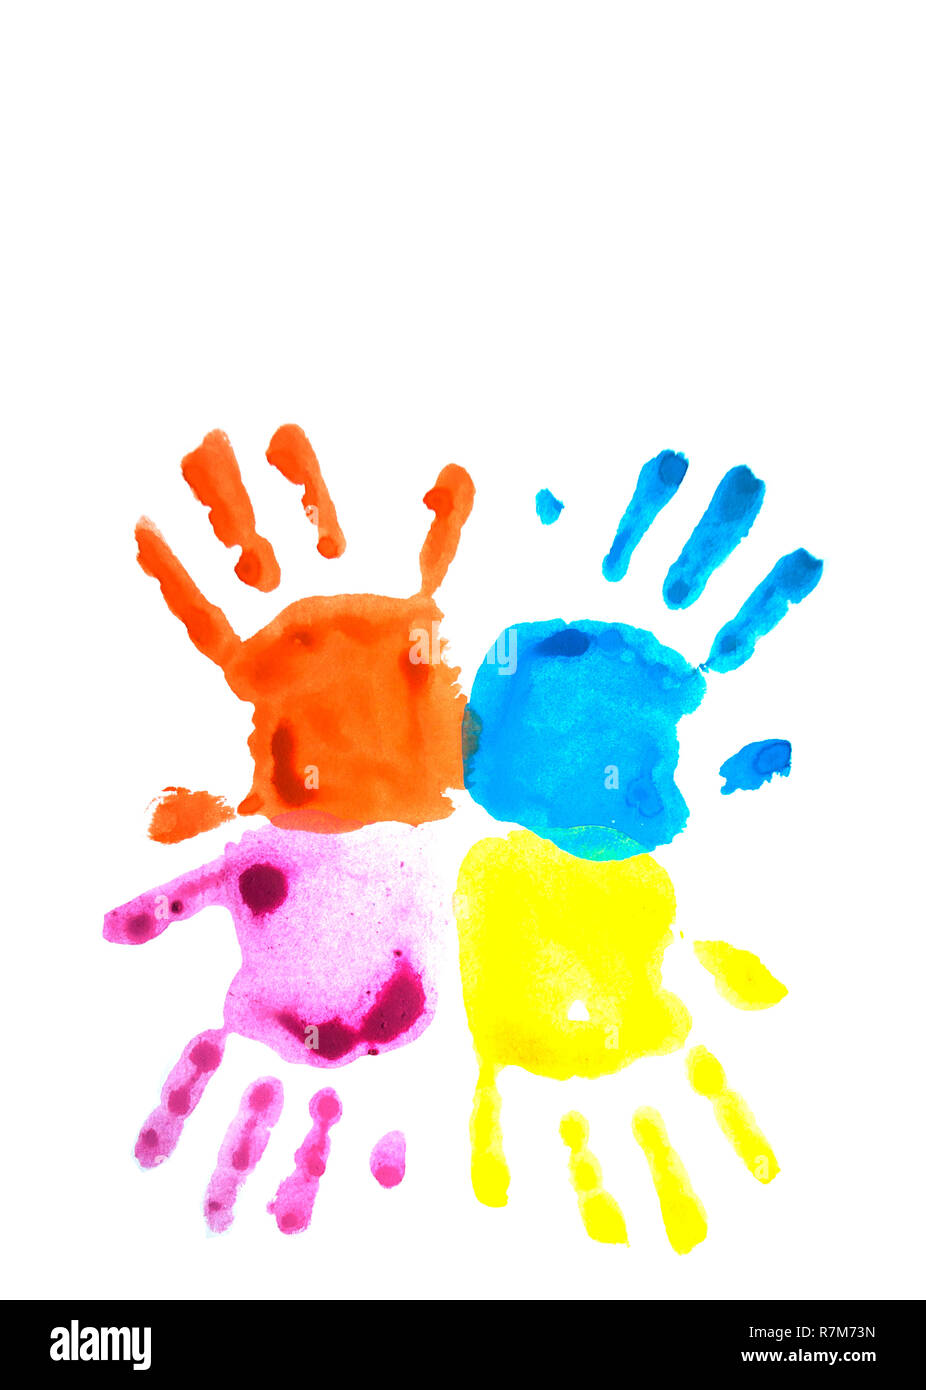 Four colorful child's handprints isolated on white with copyspace. World autism awareness day concept. - Stock Image